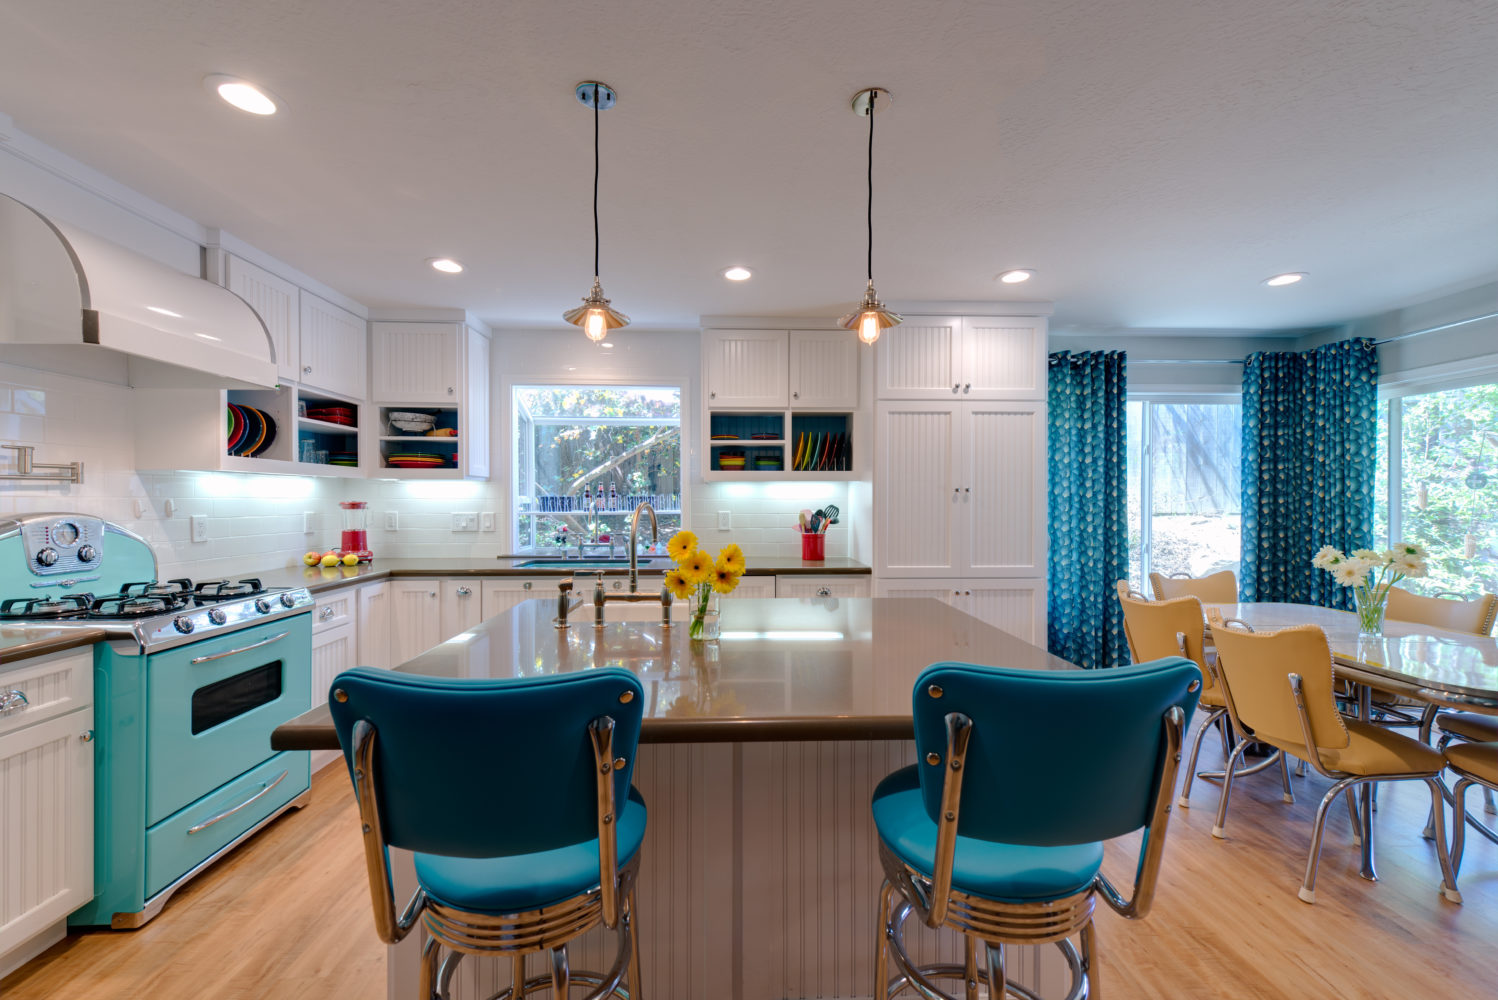 Yoko Oda Interior Design Provides Turnkey Solutions For Residential And Commercial Remodeling Decorating Projects Serves The San Francisco Bay Area